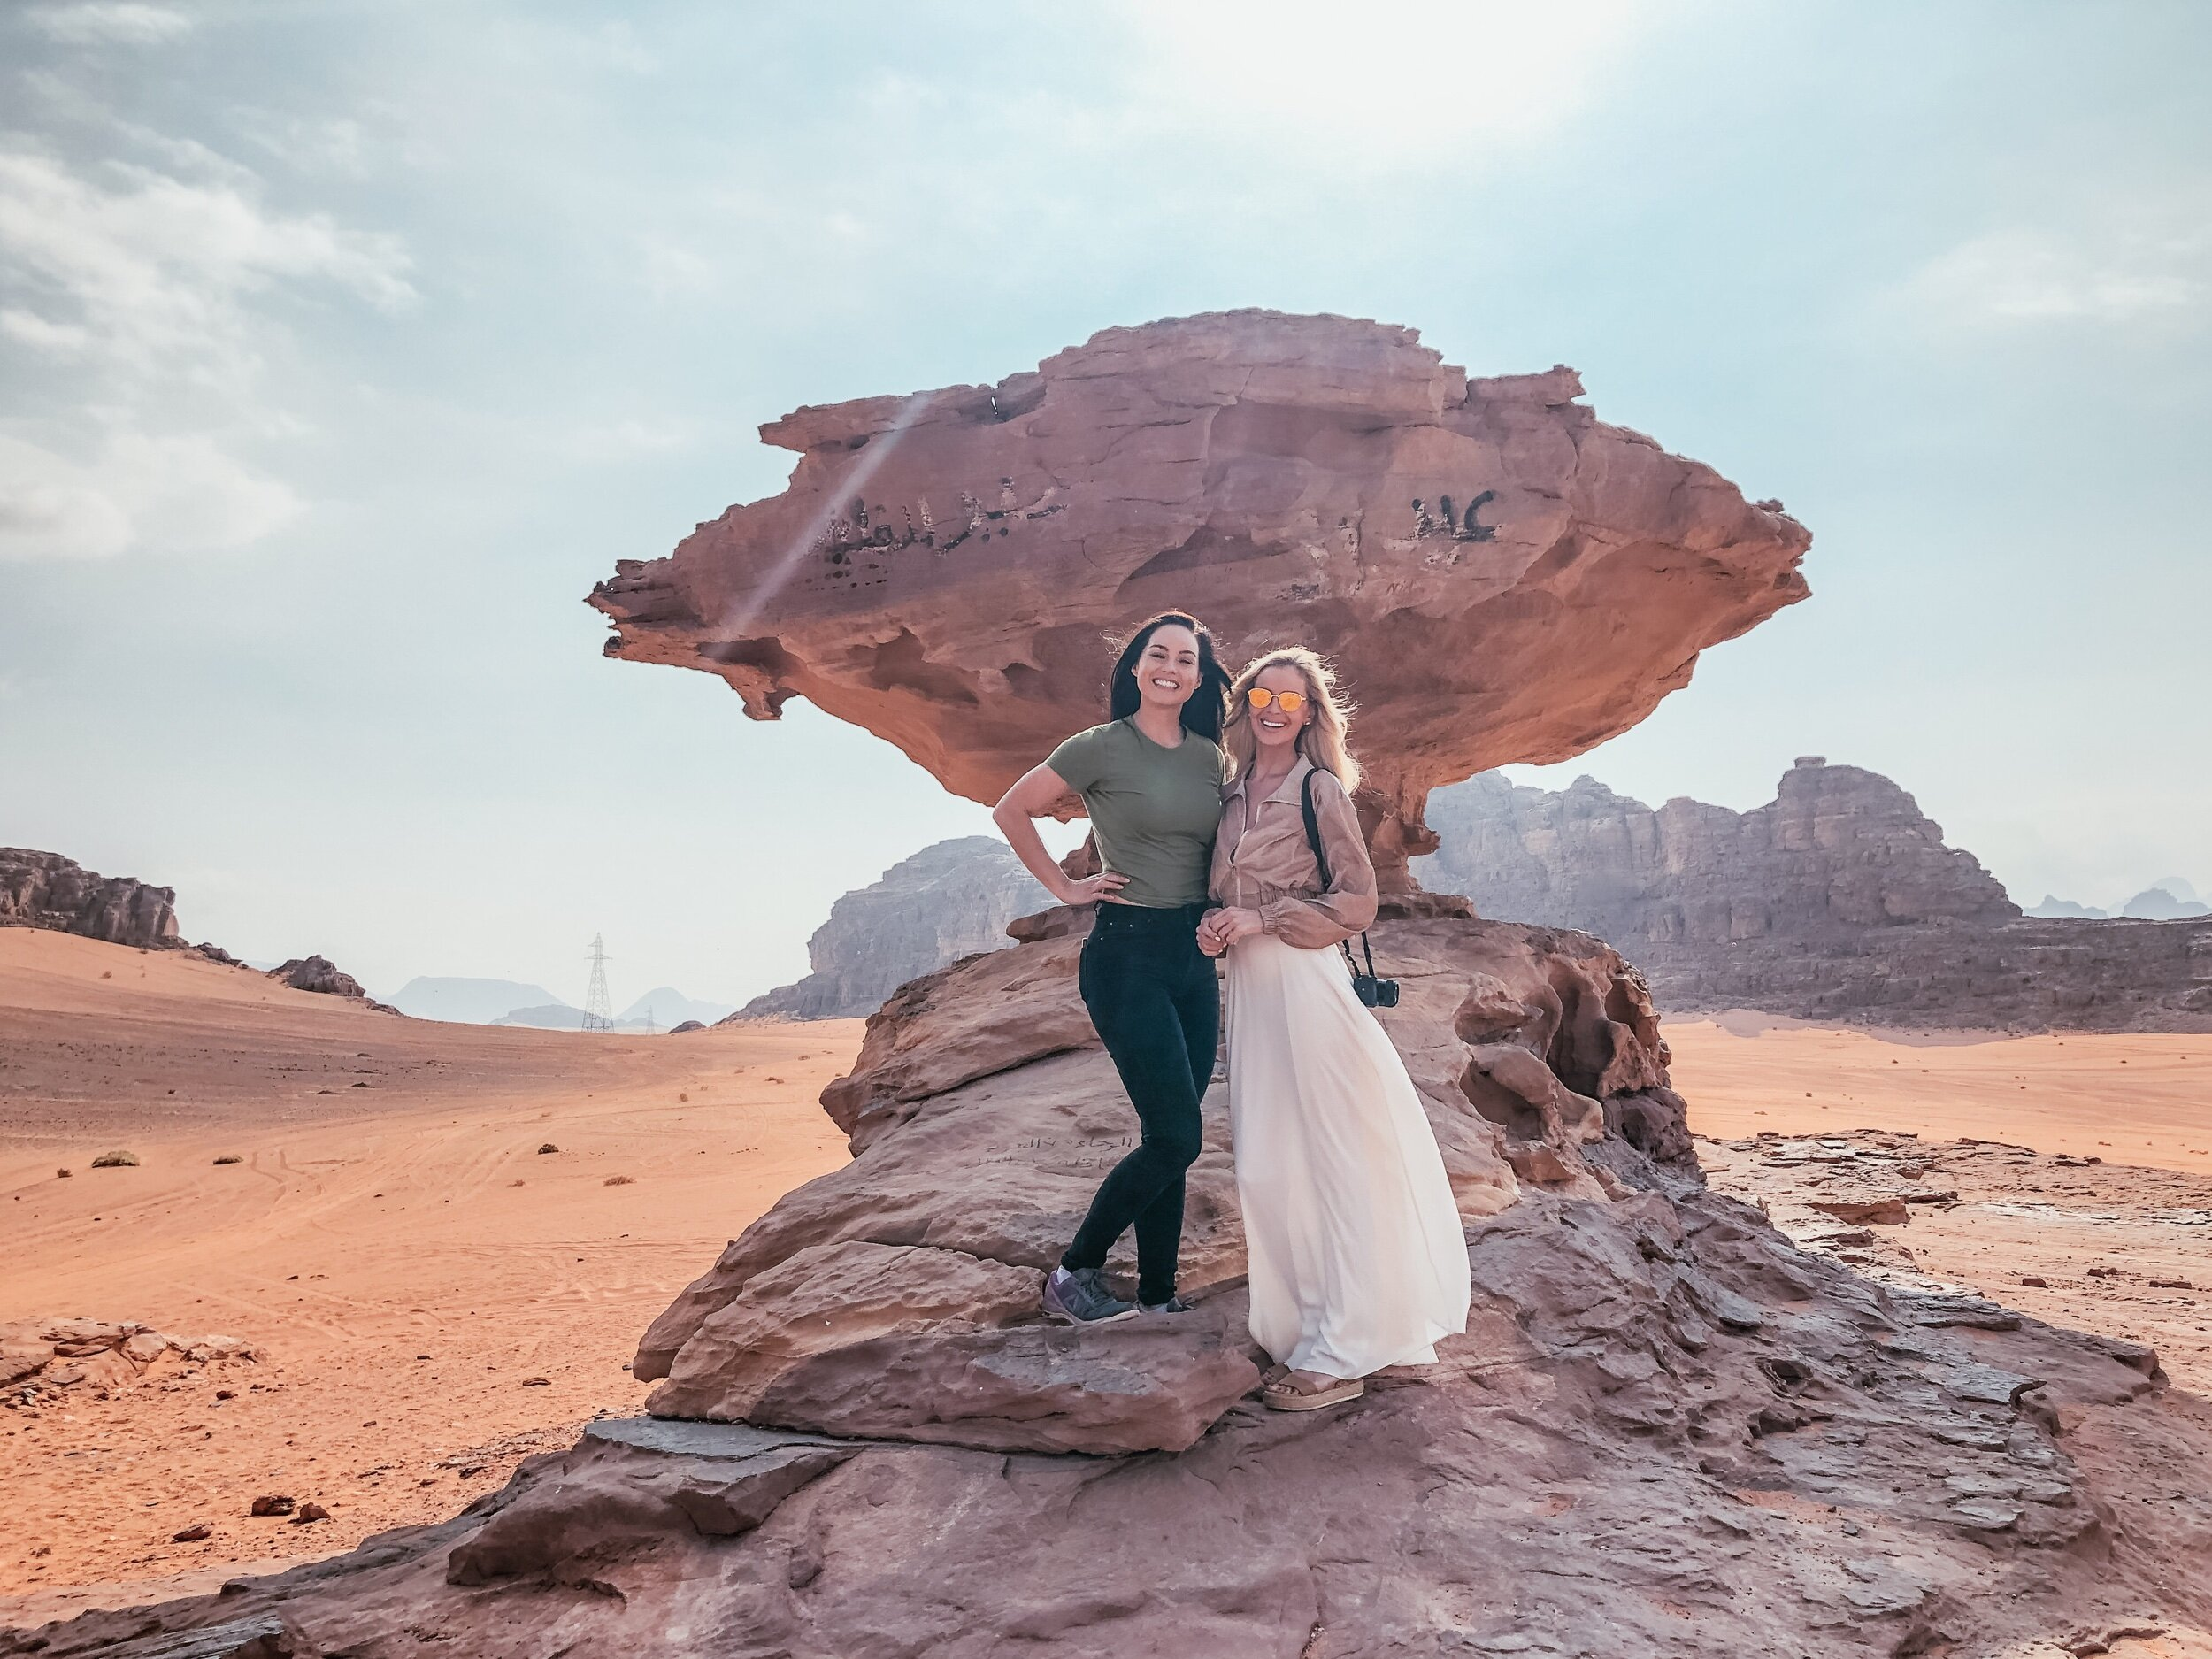 So many great photo spots in Wadi Rum.